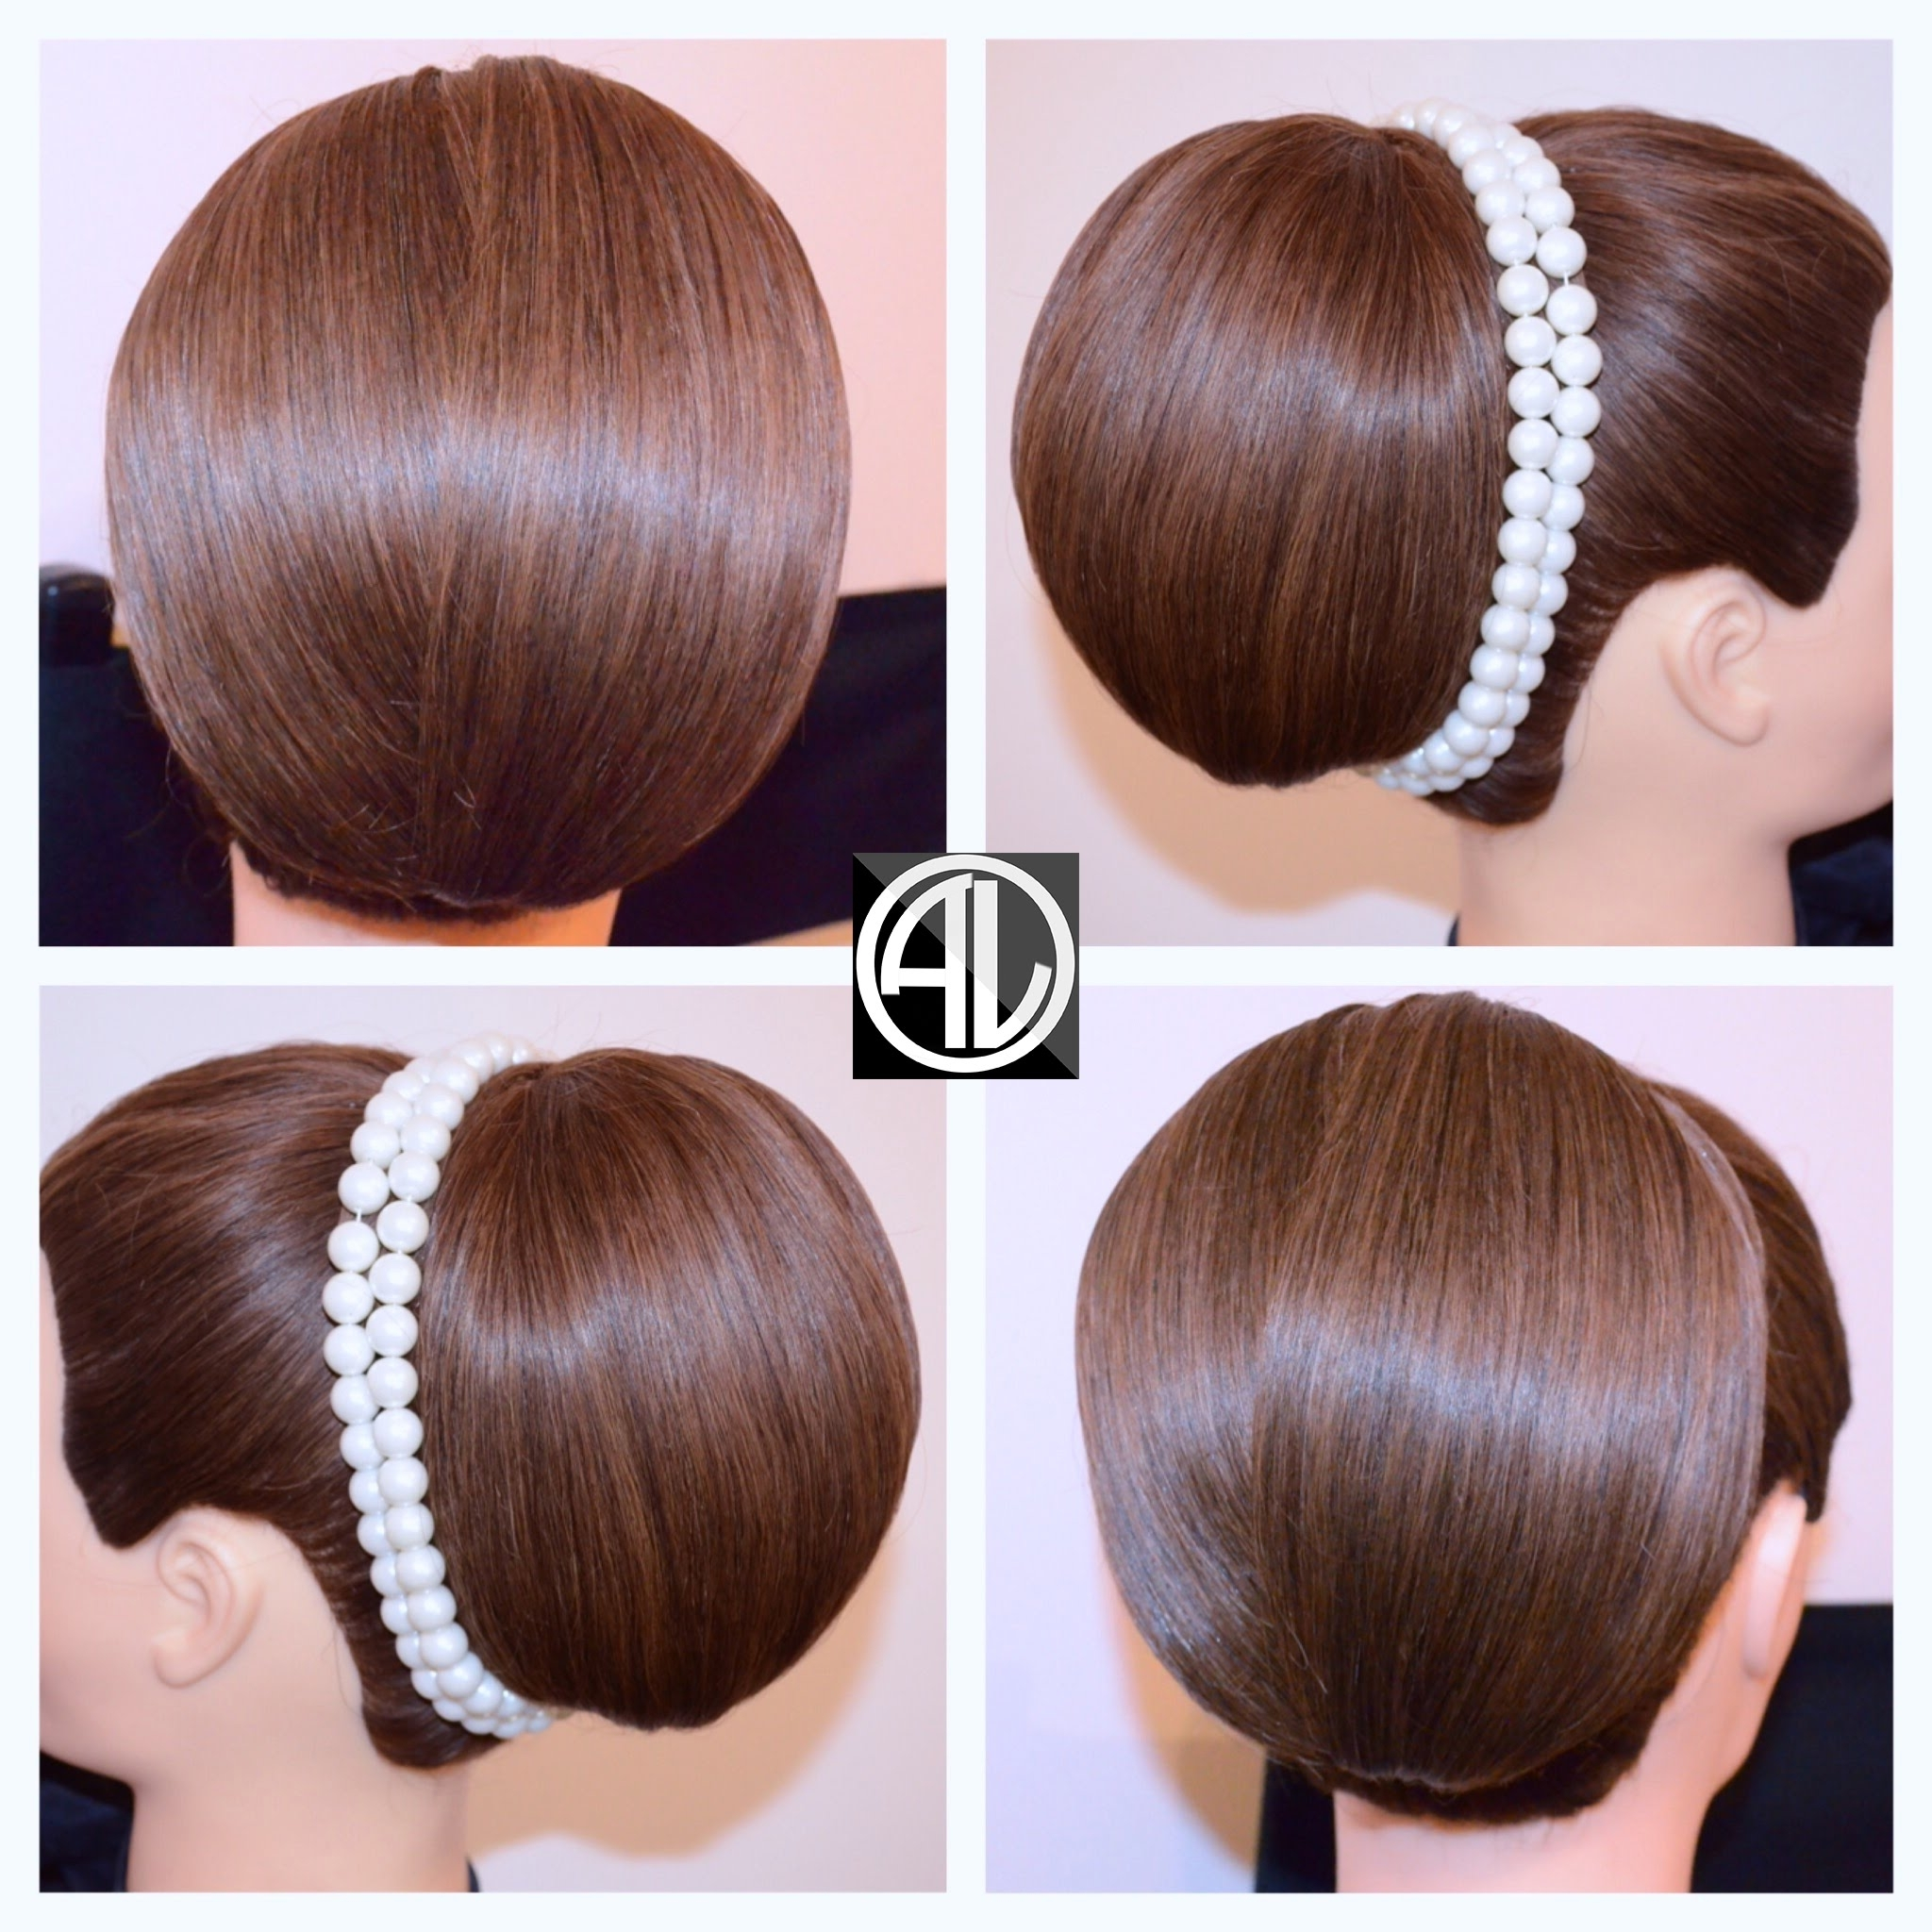 Widely Used Audrey Hepburn Wedding Hairstyles Regarding Vintage Hair 60S Hairstyle Udp Bridal Asian Classy Wedding Hairstyle (View 14 of 15)